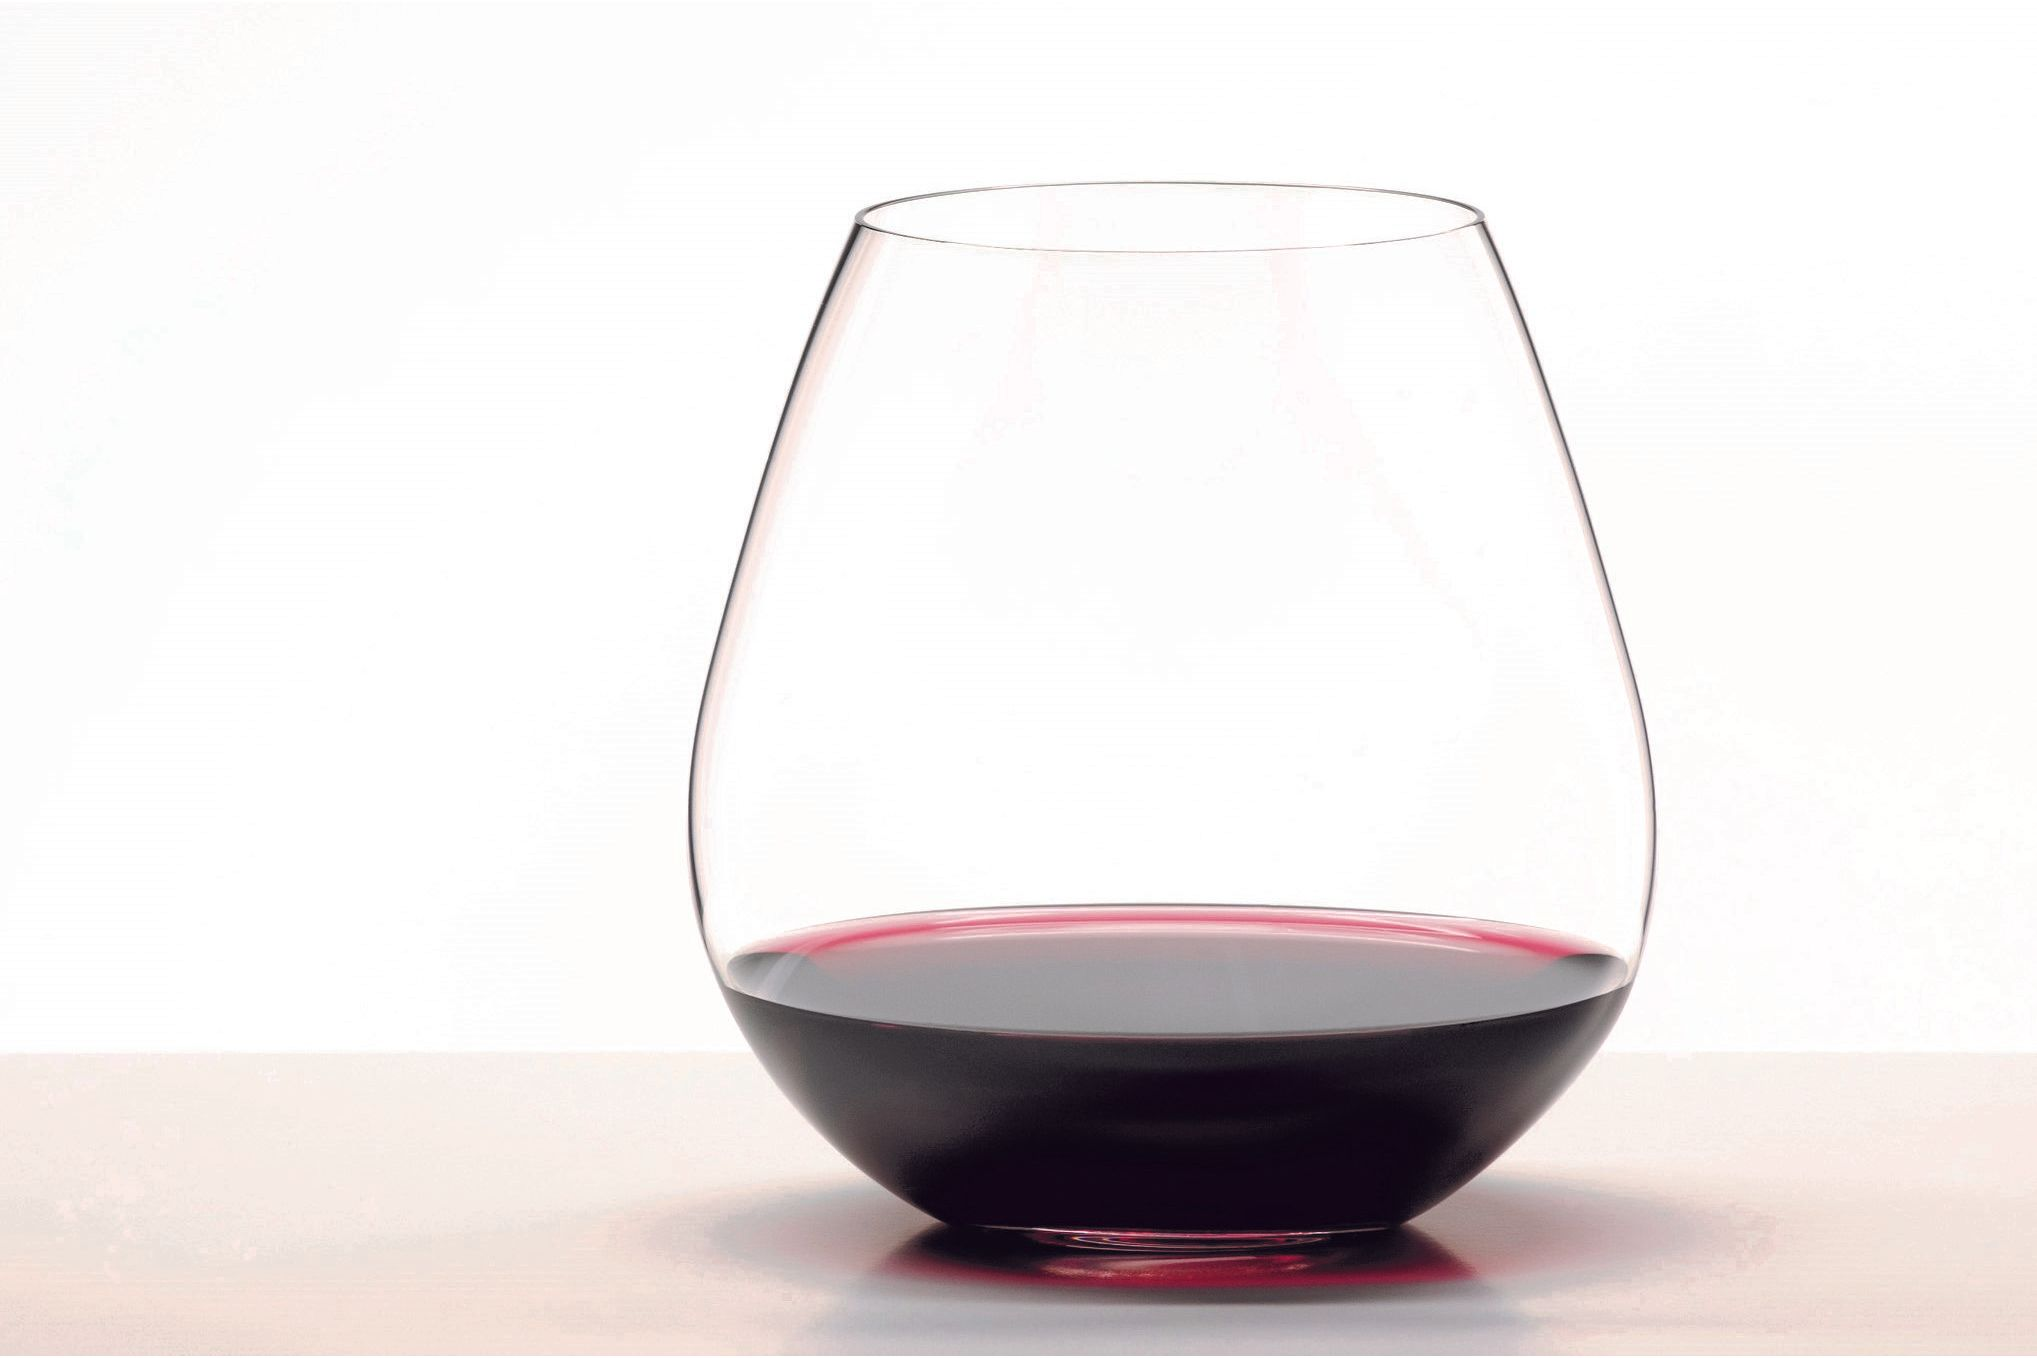 Riedel Riedel O Pair of Red Wine Glasses Pinot/Nebbiolo 690ml thumb 3